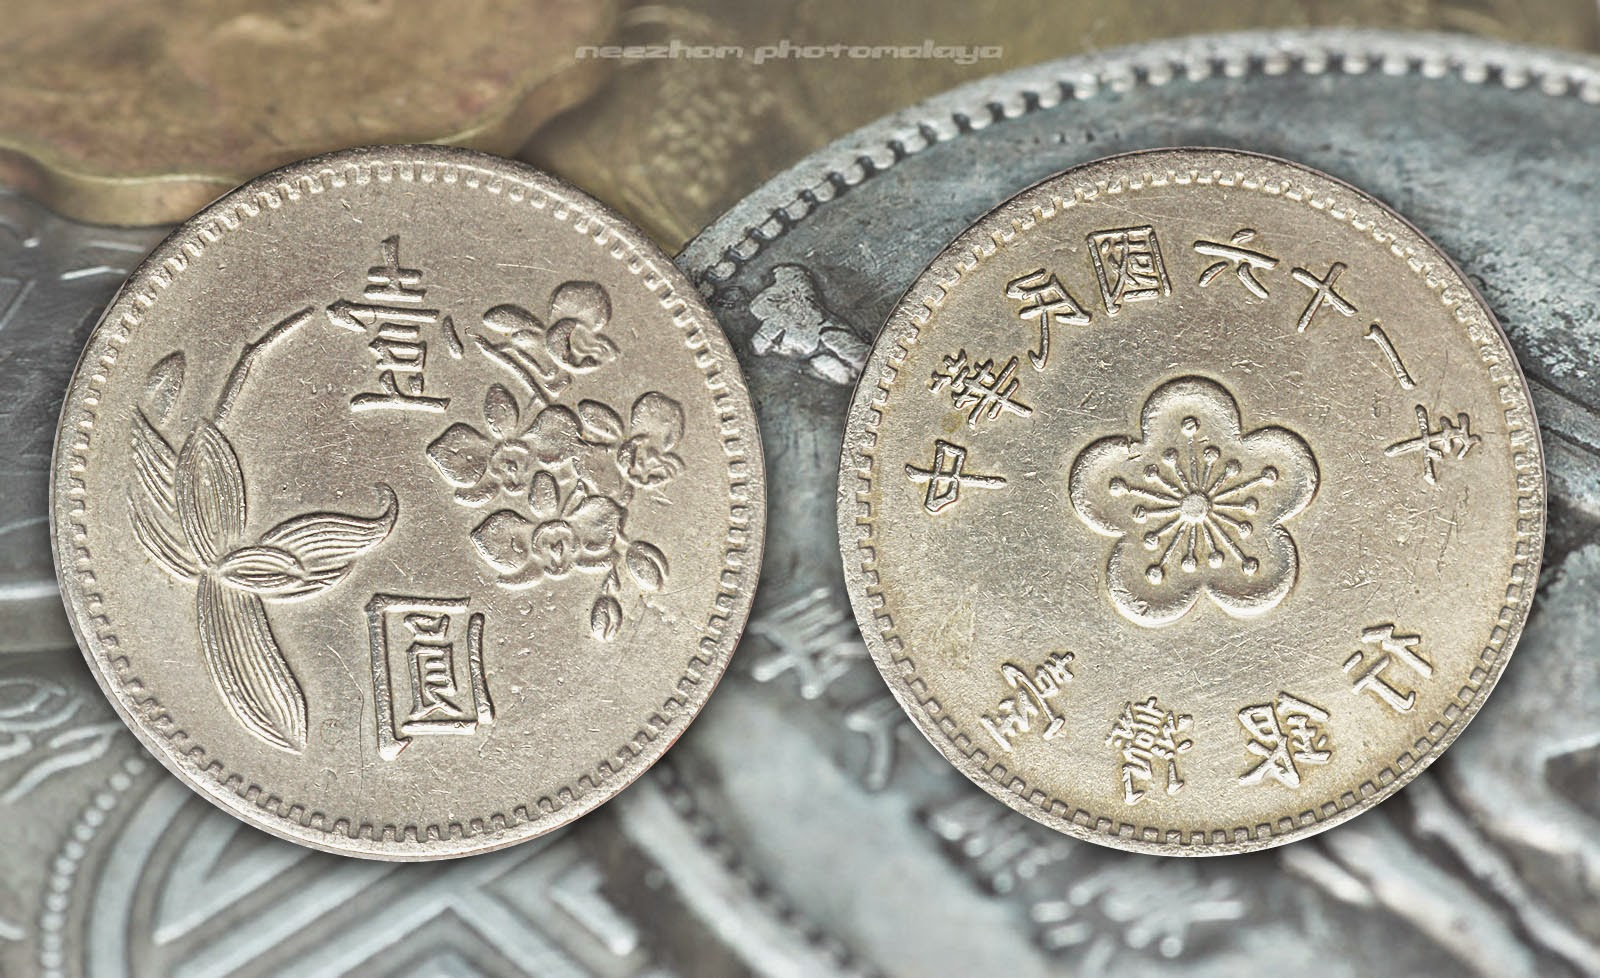 China And Hong Kong Coins Collection Neezhom Photomalaya